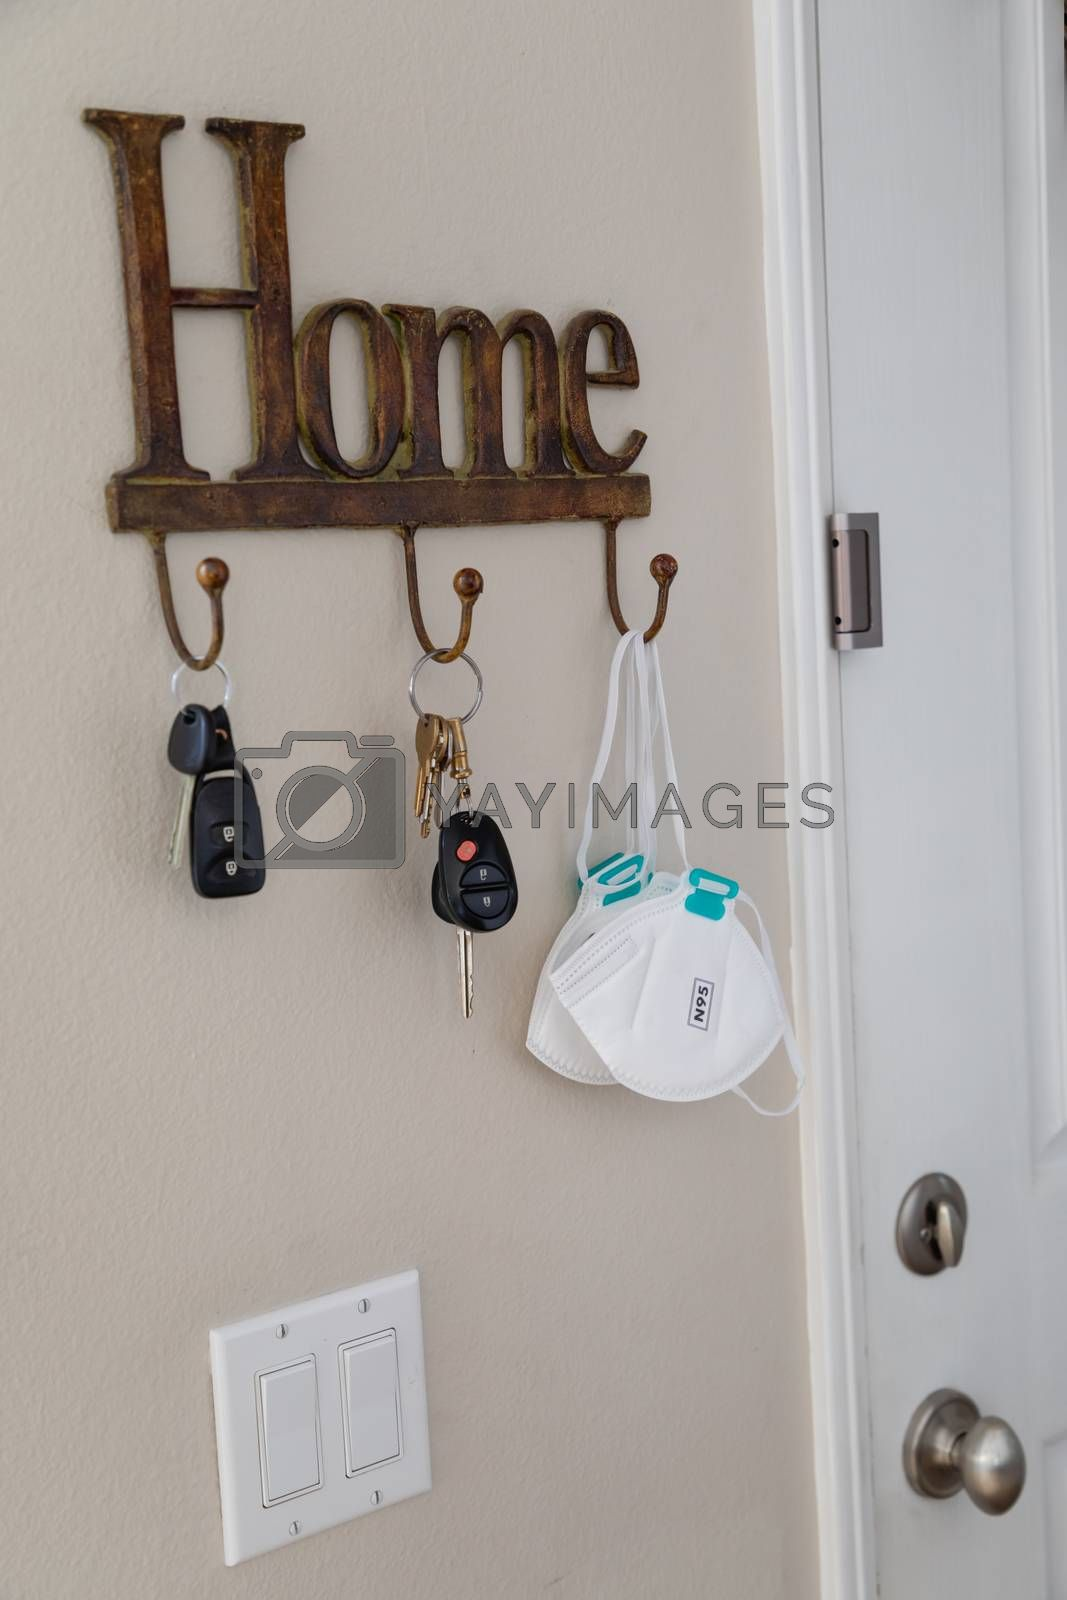 Home Key Hanger Rack Next to Door With Keys and Medical Face Mask During Coronavirus Pandemic.